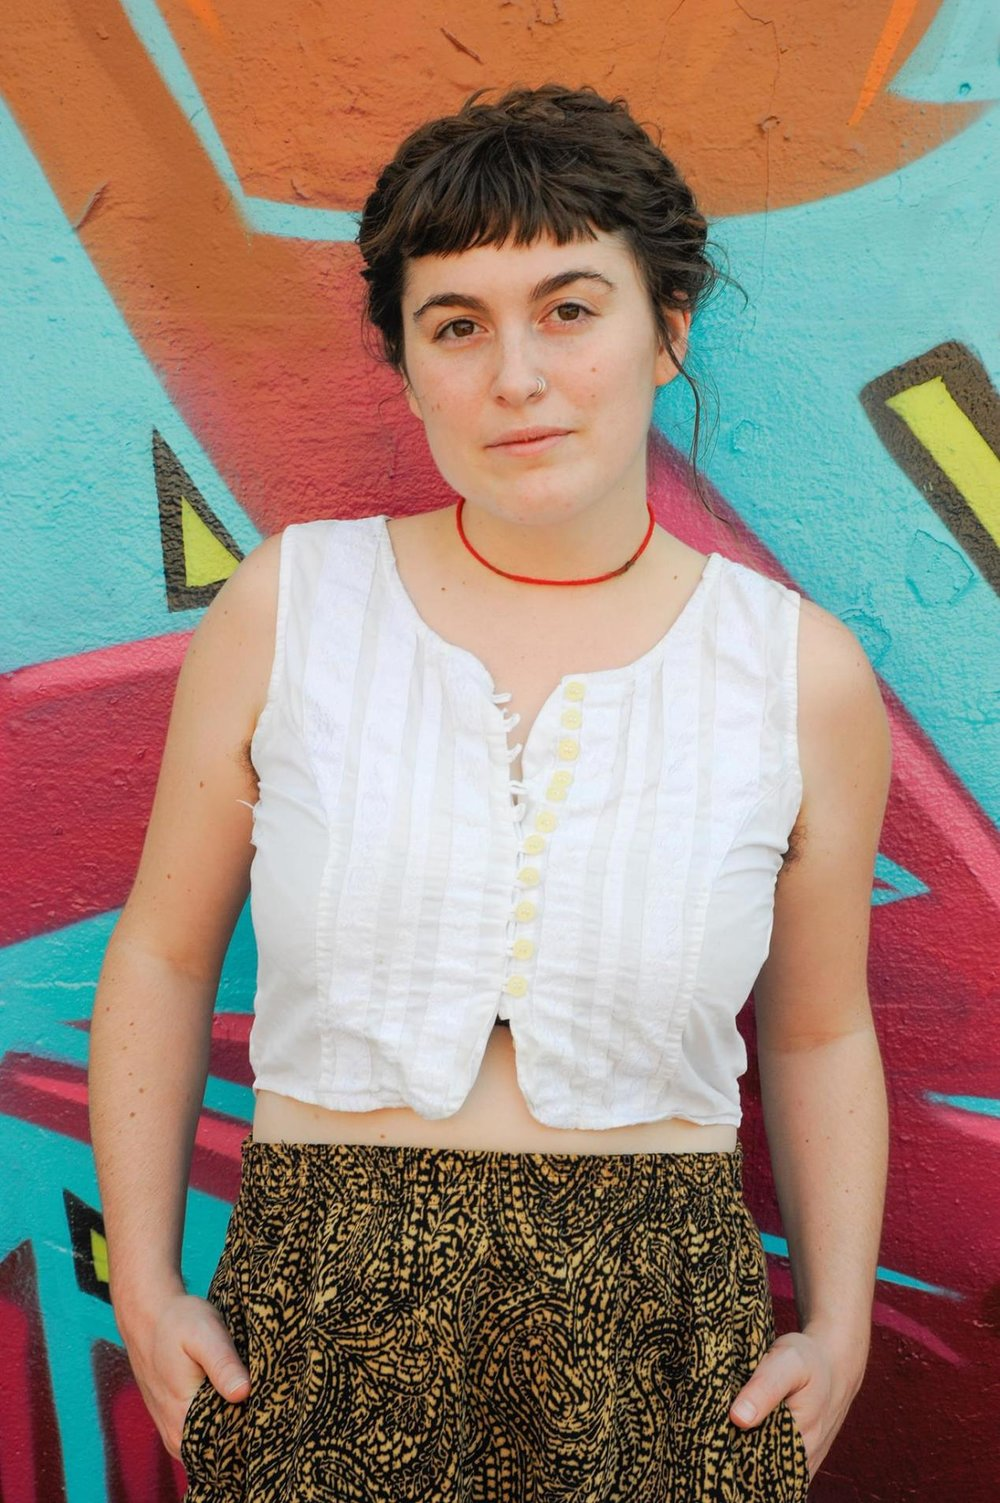 Allison Clendaniel, artistic director   Allison Clendaniel is an interdisciplinary artist reborn in Baltimore, MD. Her work encompasses sound, extended vocal technique, performance art, movement, and theatre.   A versatile improviser, Allison has composed and performed music for voice, synthesizer, piano, computer, cello, and theremin in both solo and collaborative environments. She currently focuses her artistic attention at the intersectionality between technology and acoustic instruments. She has studied voice and movement with legendary performer and composer, Meredith Monk at the House Foundation, clowning with Globus Hystericus, and has toured extensively through North America as a teacher and performing artist.   She tries to build beautiful things around her, crafting songs, making theatre, and working permanently with Nudie Suits, The Flowery, In the Womb of the Everywhere Room, Feral Woman, and Mind On Fire. For more information, please visit  www.allisonisonline.com .